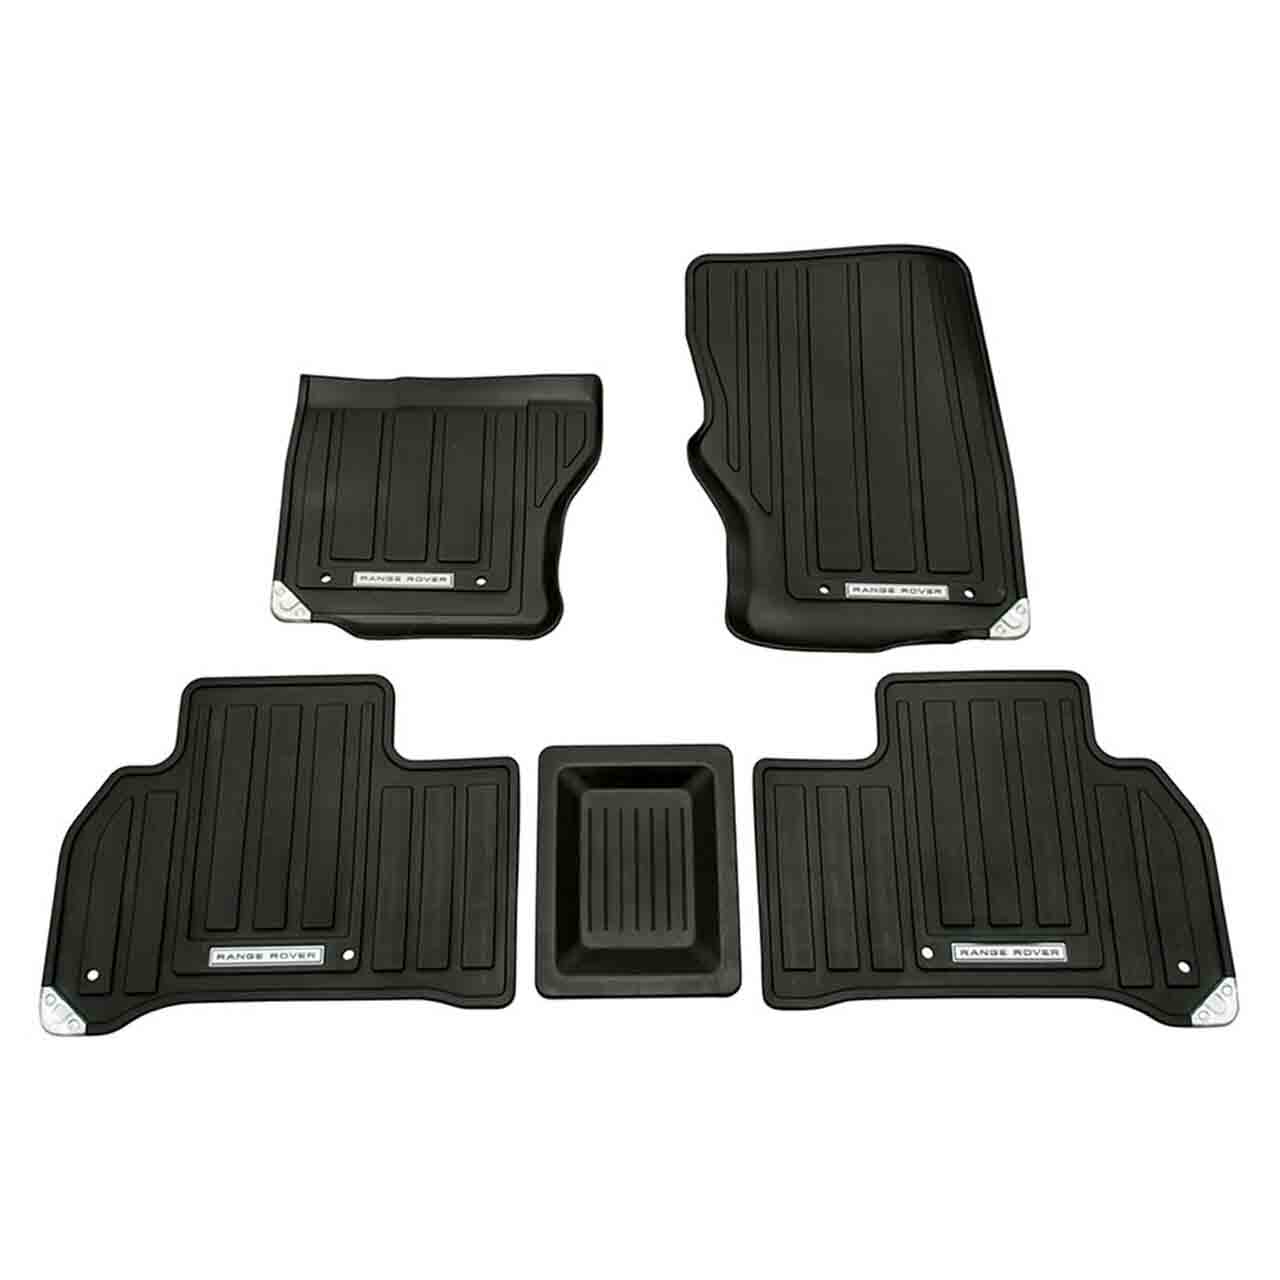 Set Tappetini Gomma Range Rover Sport Lhd Anteriore-Posteriore Range Rover Sport Land Rover GR2-07443